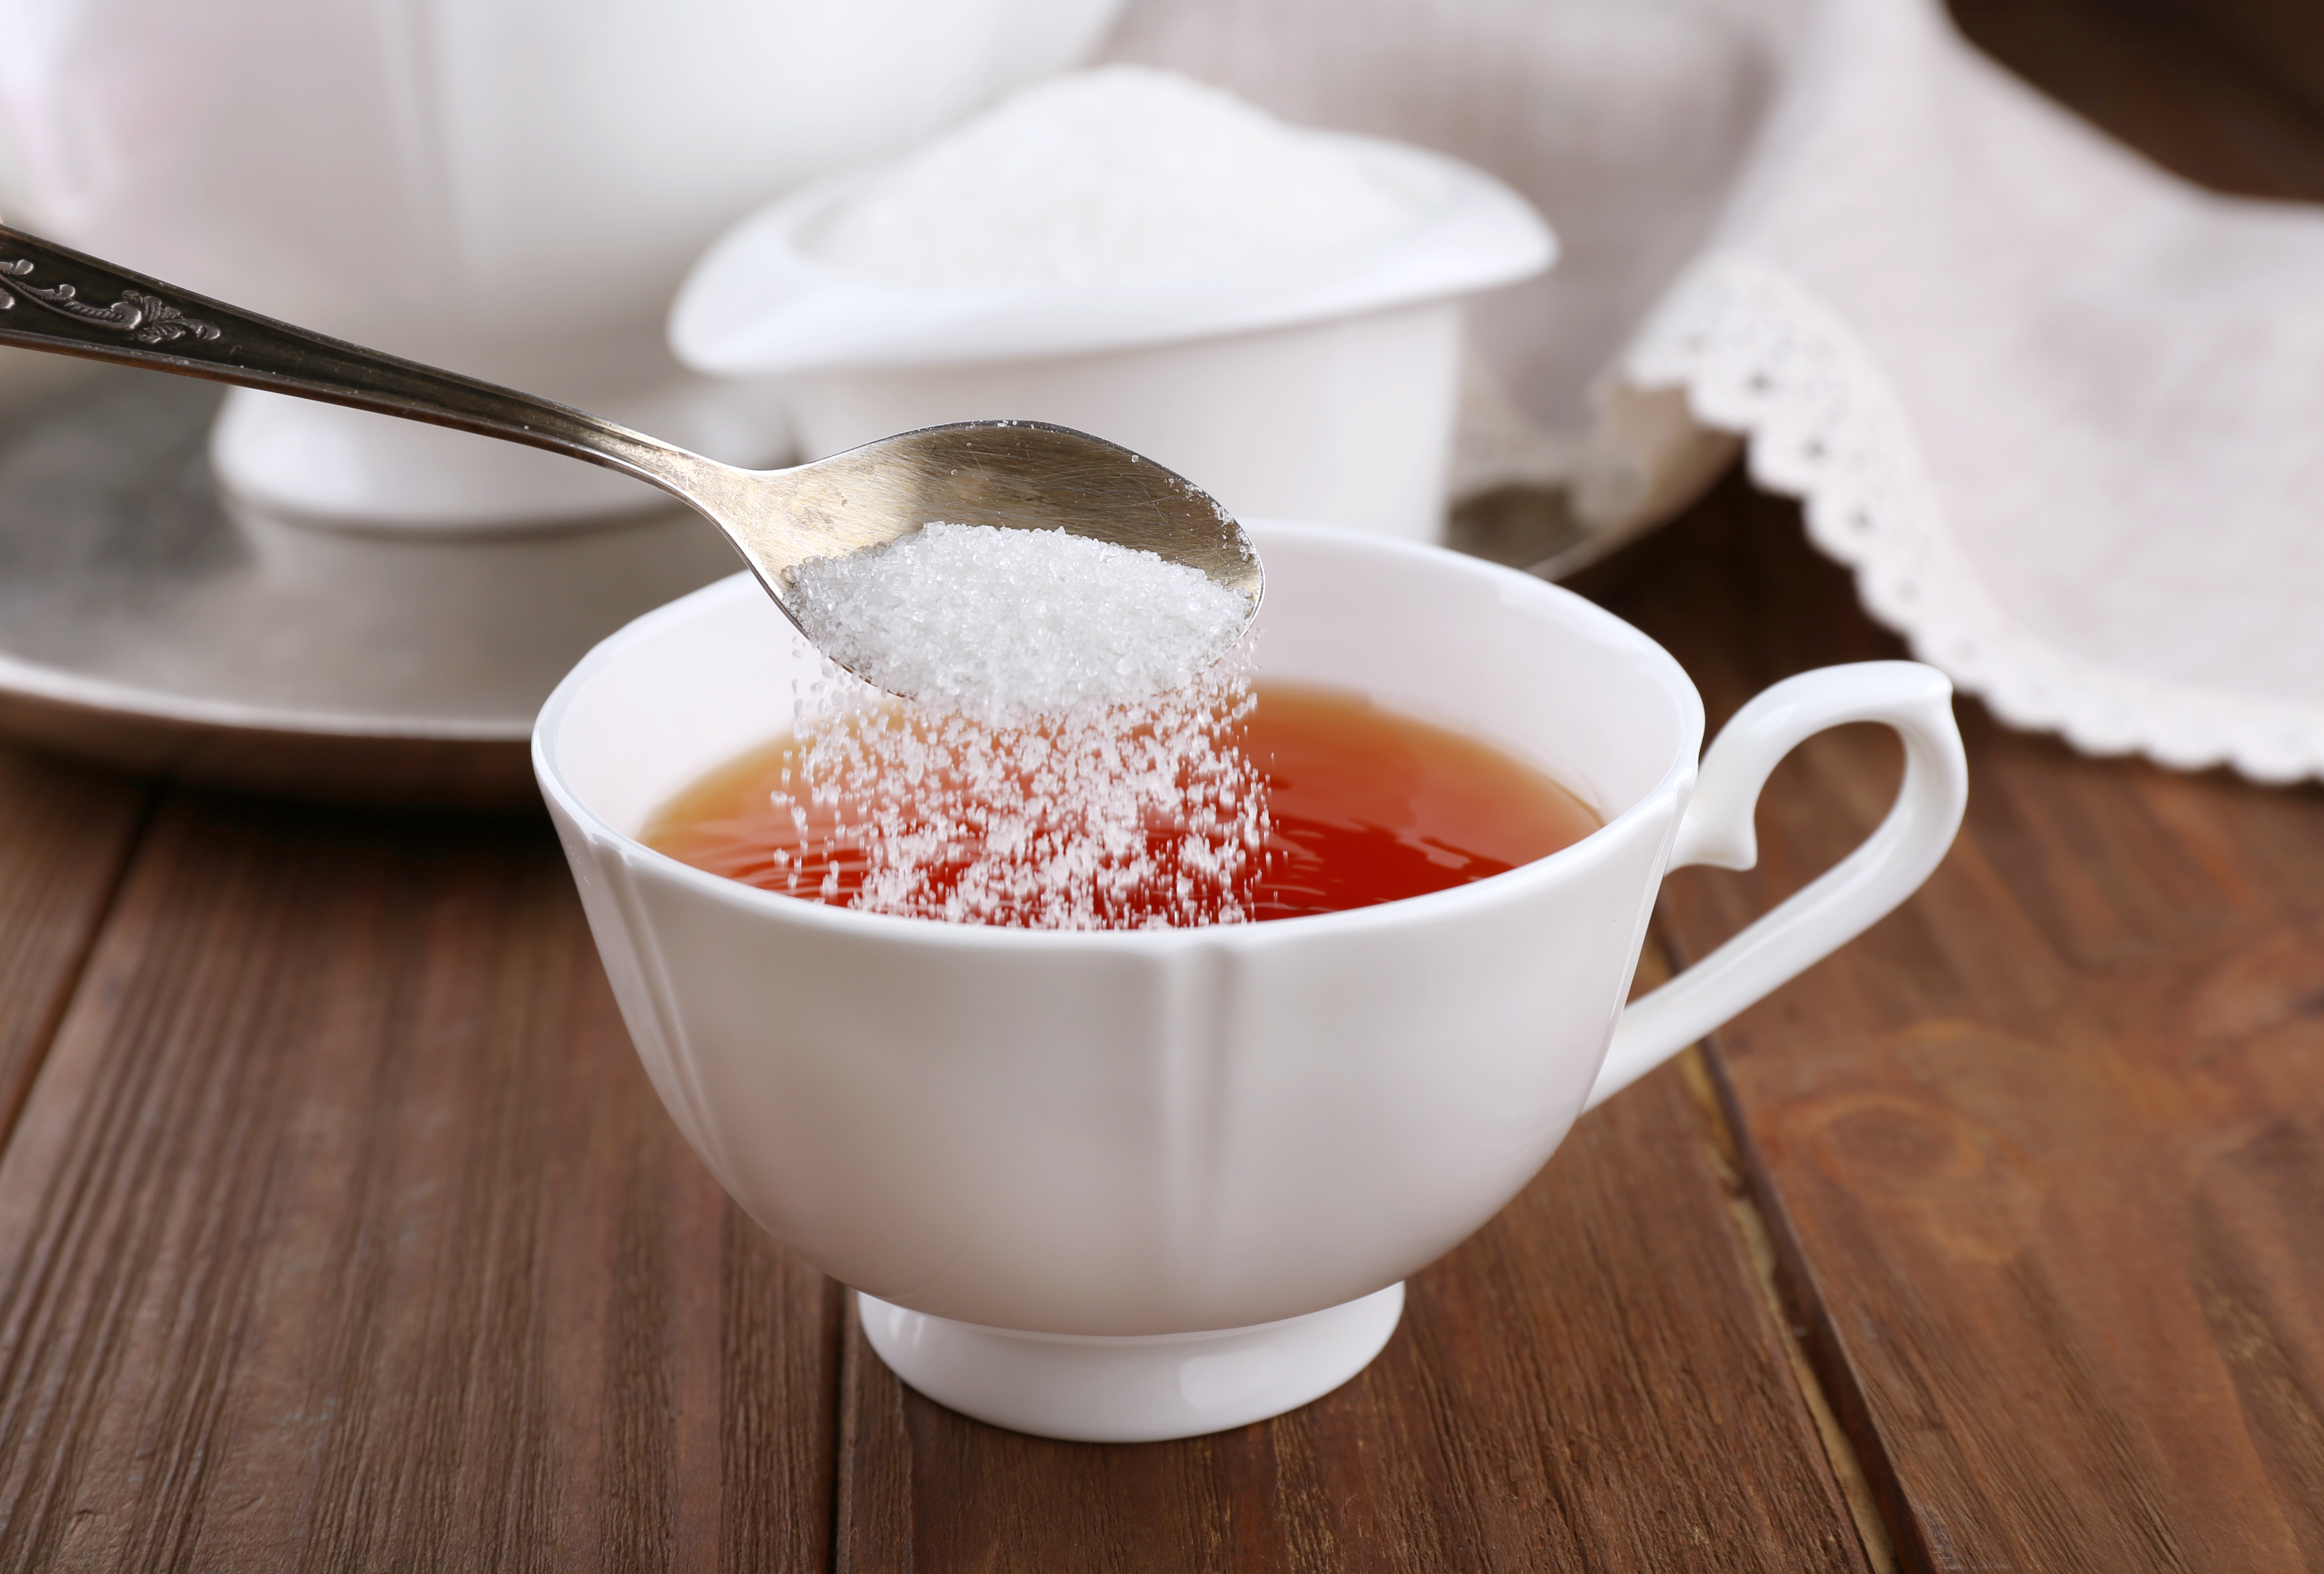 Adding sugar to cup of black tea on wooden table